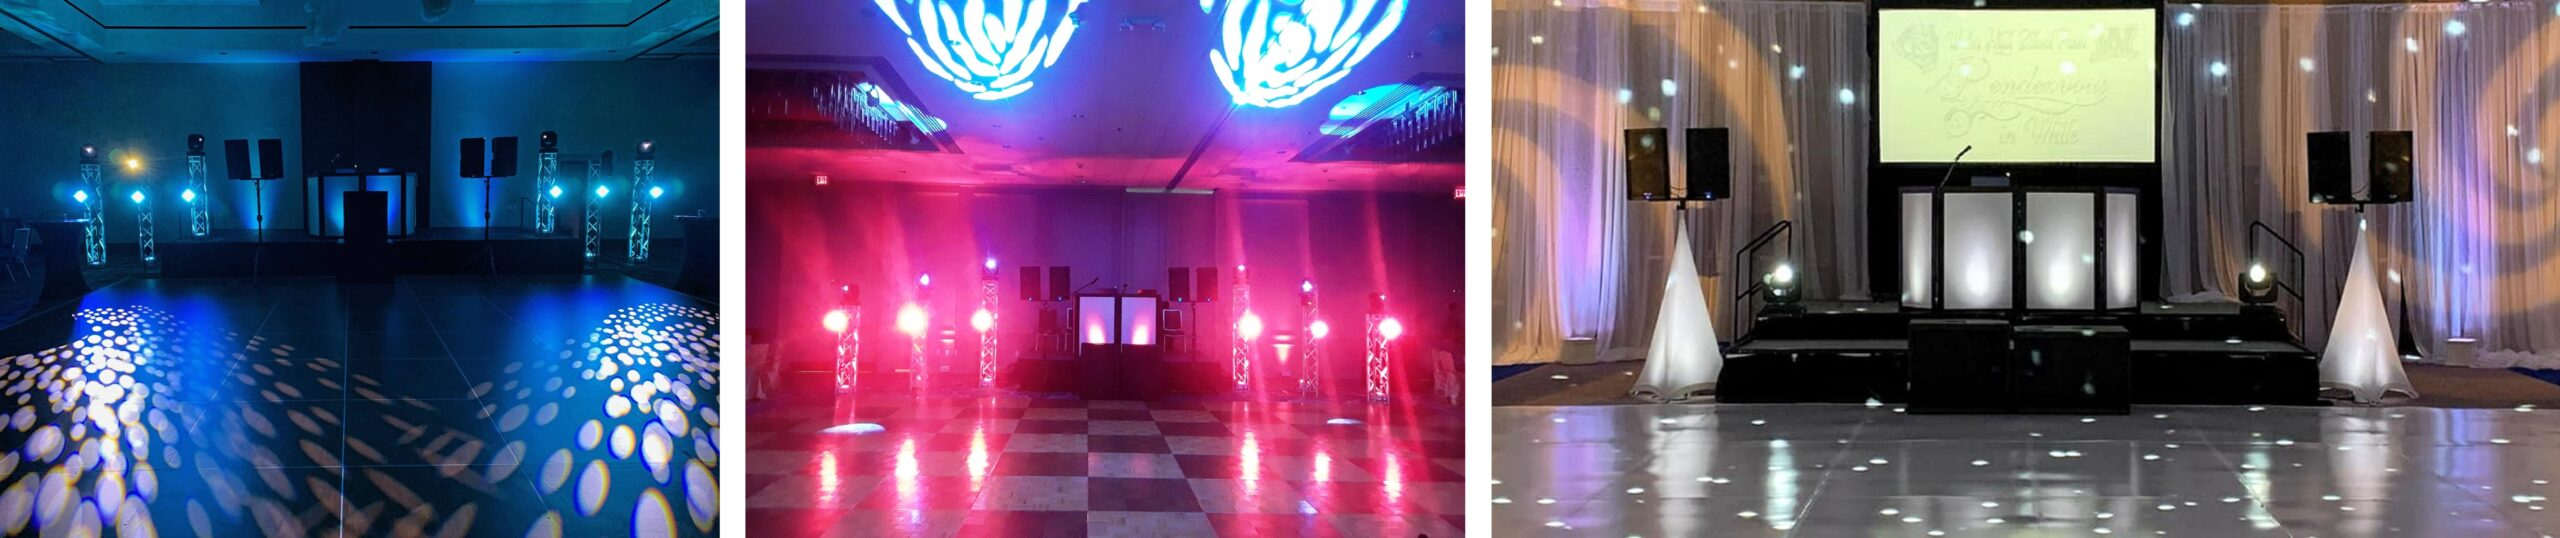 Houston DJ, DJs in Houston, Houston Prom DJ, Houston School Dance, Houston Homecoming Dance DJ, Club Lighting, Awesome Music Entertainment, Awesome Event Pros, AME DJs